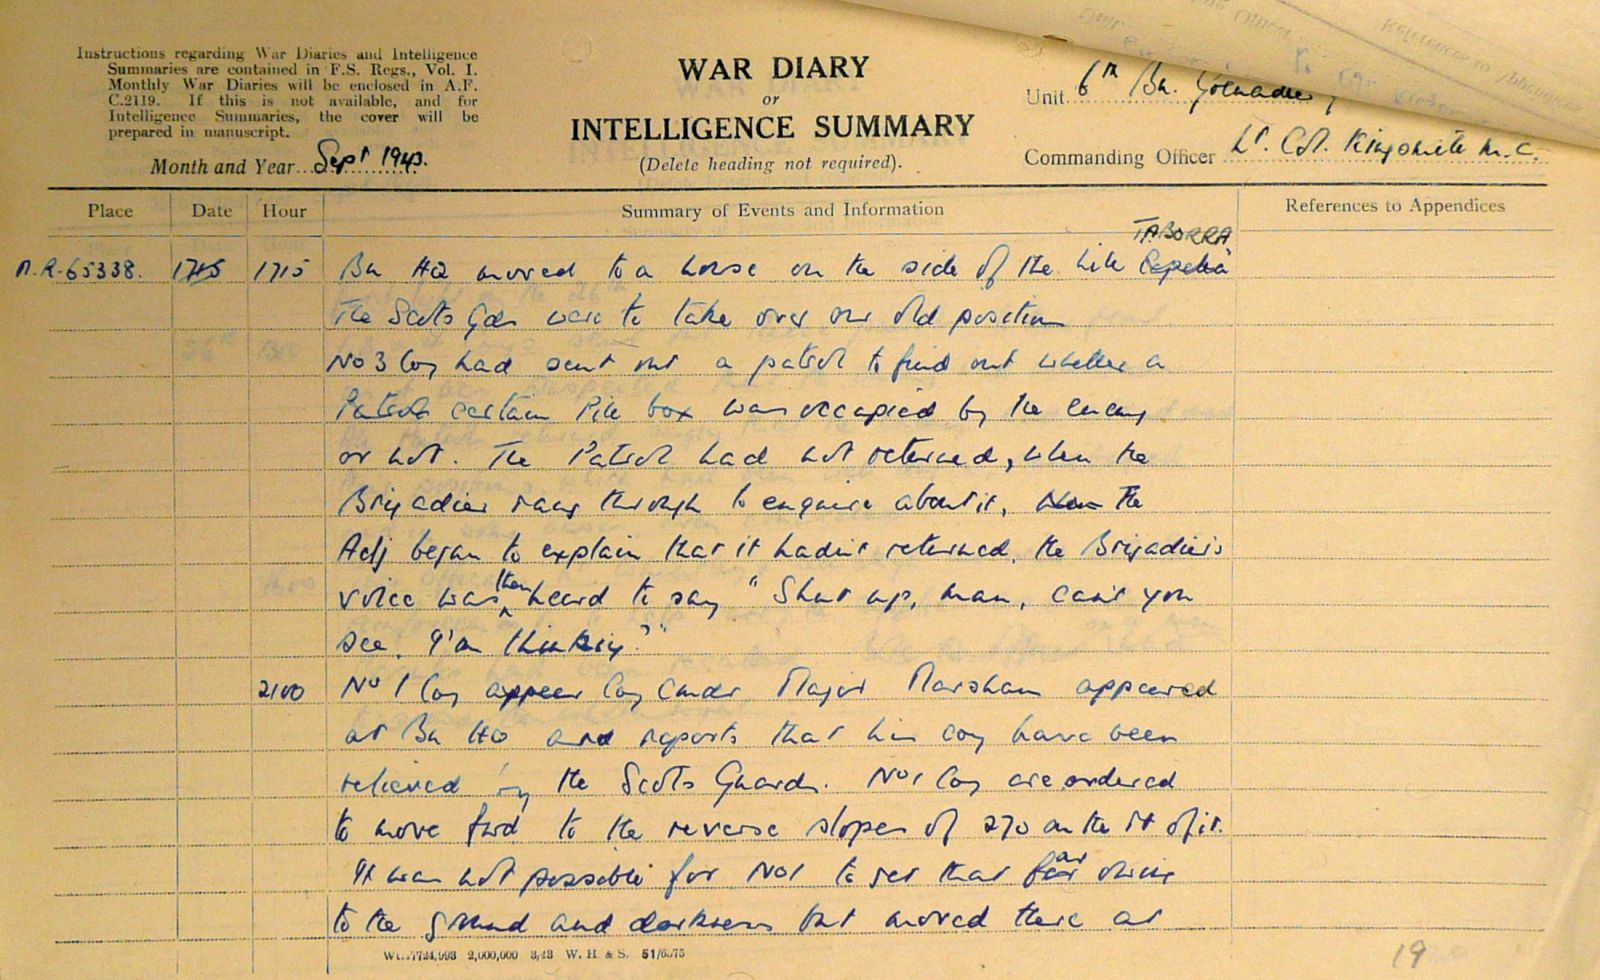 September War Diary, 6th Motor Battalion Grenadier Guards, 1943